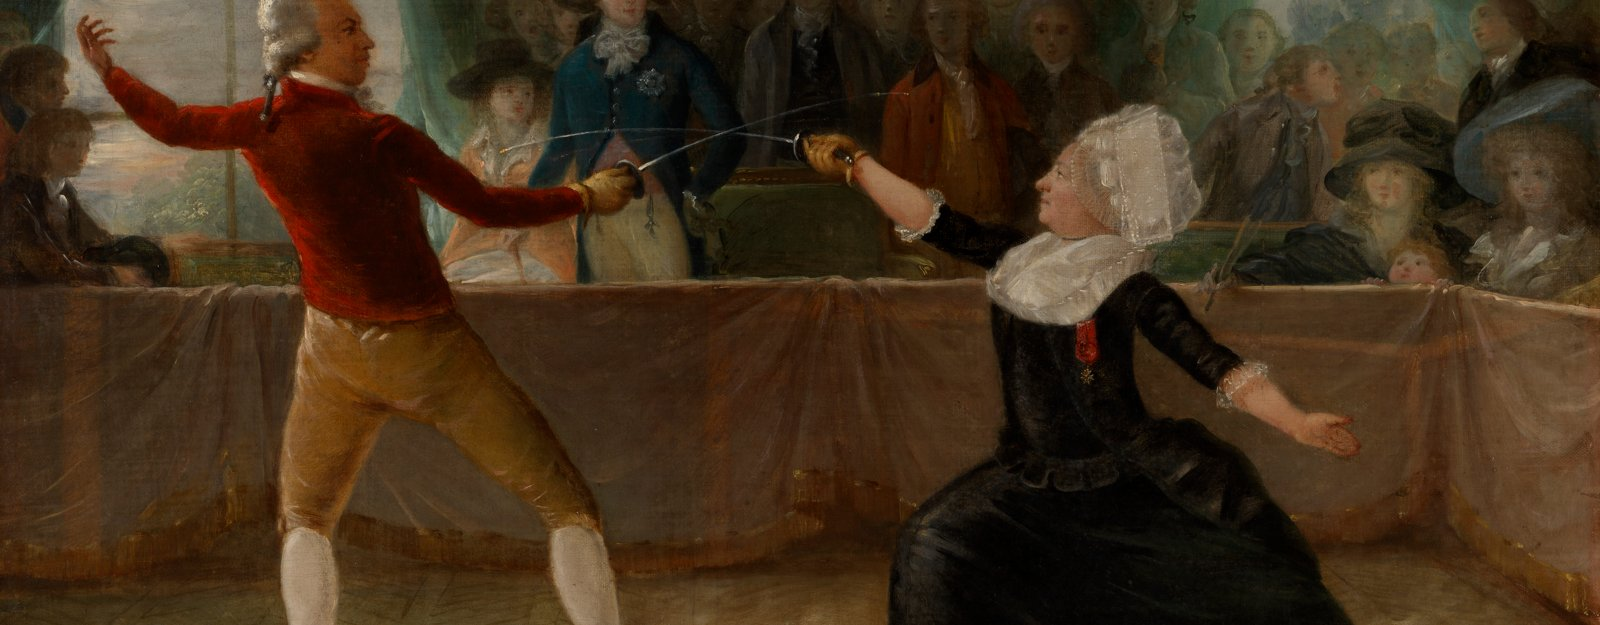 Painting of two people fencing, one man is dressed as a woman